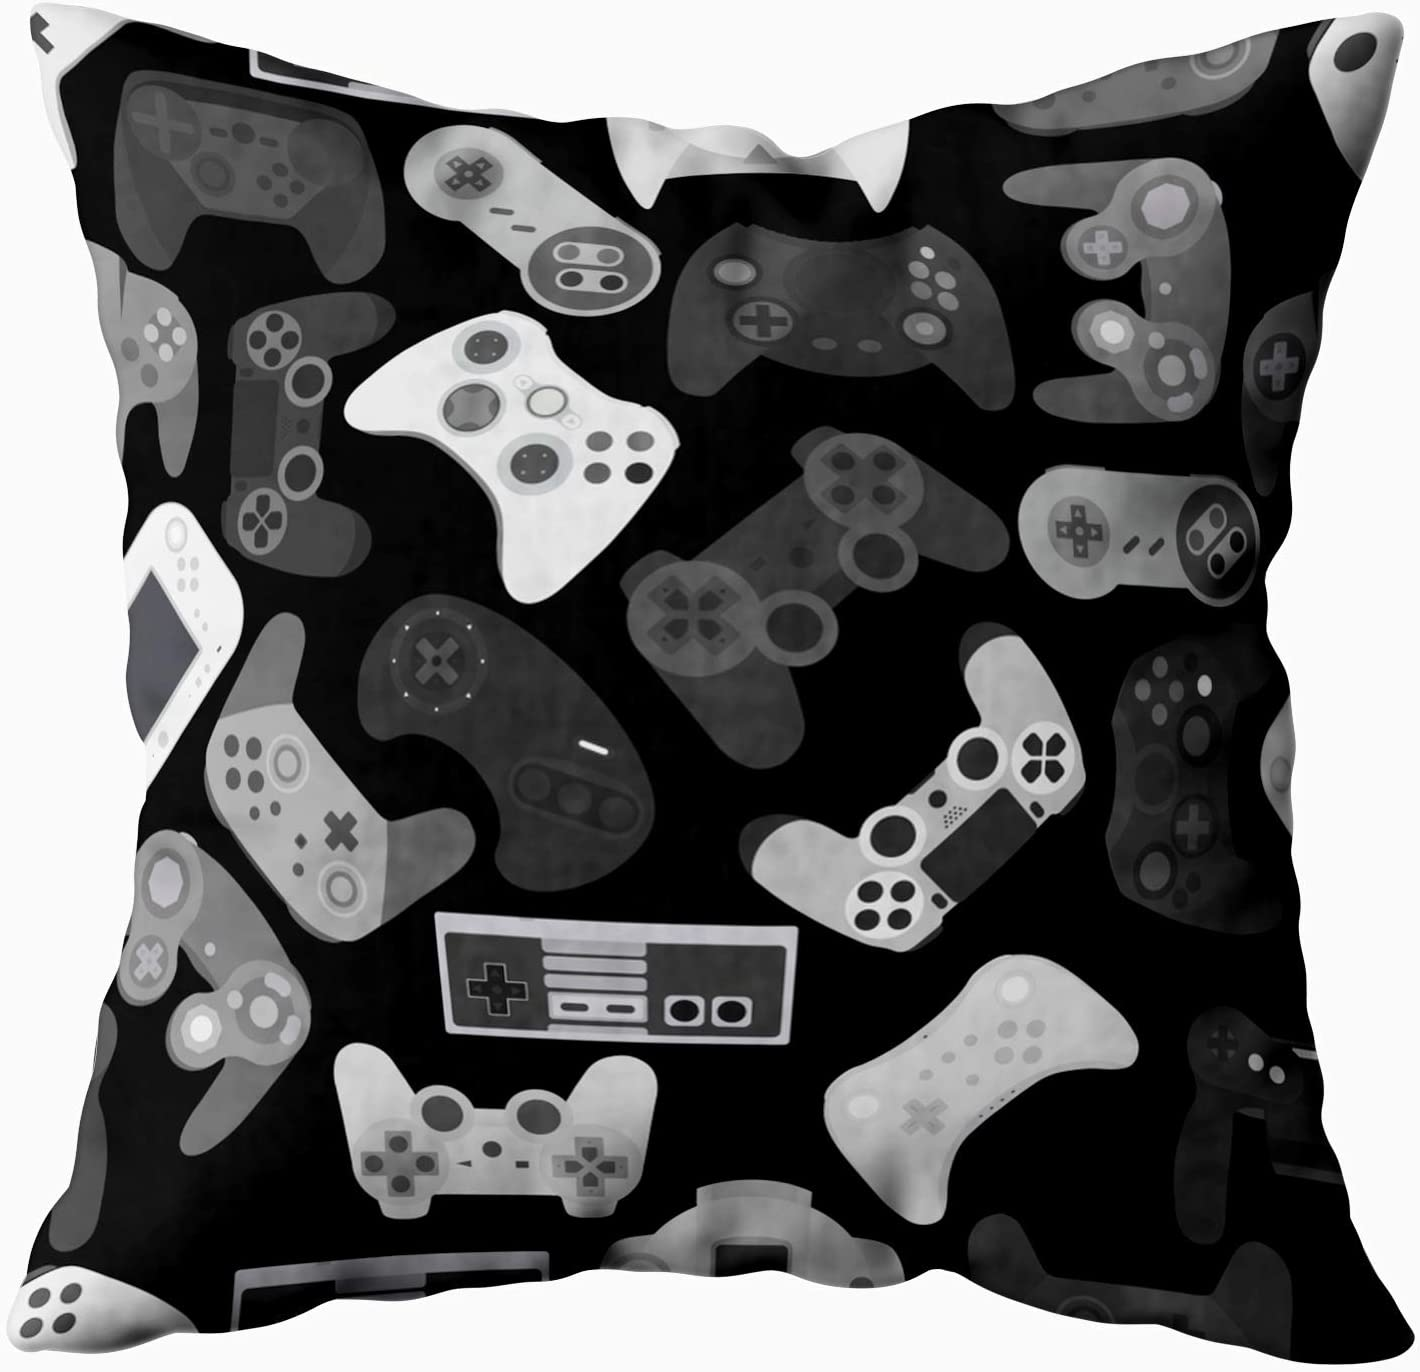 TOMWISH Cusion Pillow Cover,TOMKEY Hidden Zippered 20X20Inch Video Game Controller Background Gadgets Pattern Black White Decor Throw Cotton Pillow Case Cushion Cover for Home Decor